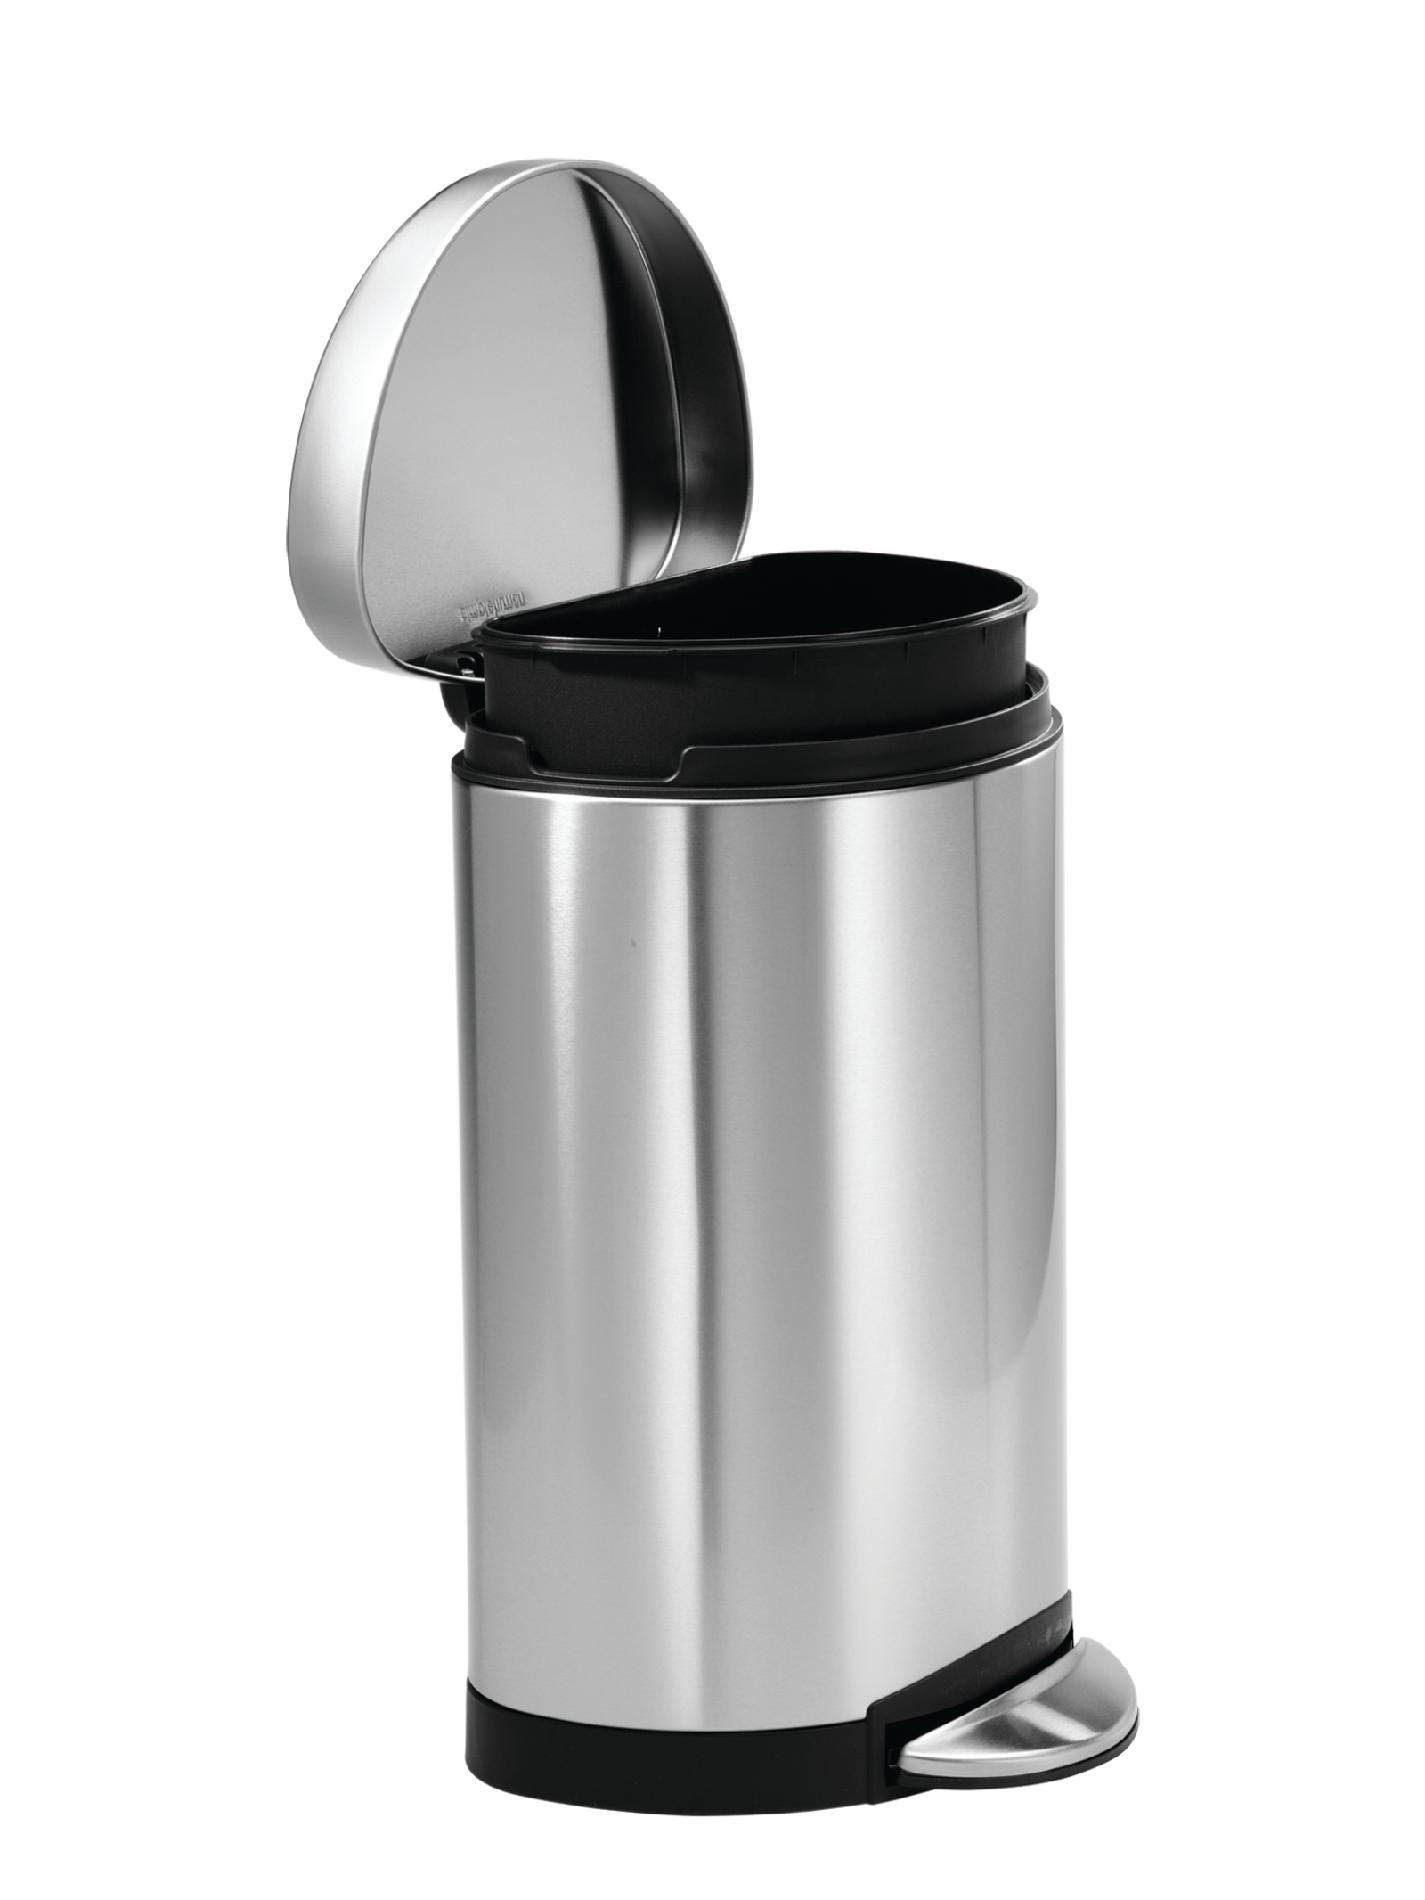 simplehuman Semi-Round Step Trash Can, Fingerprint-Proof Brushed Stainless Steel, 10 Liters /2.6 Gallons